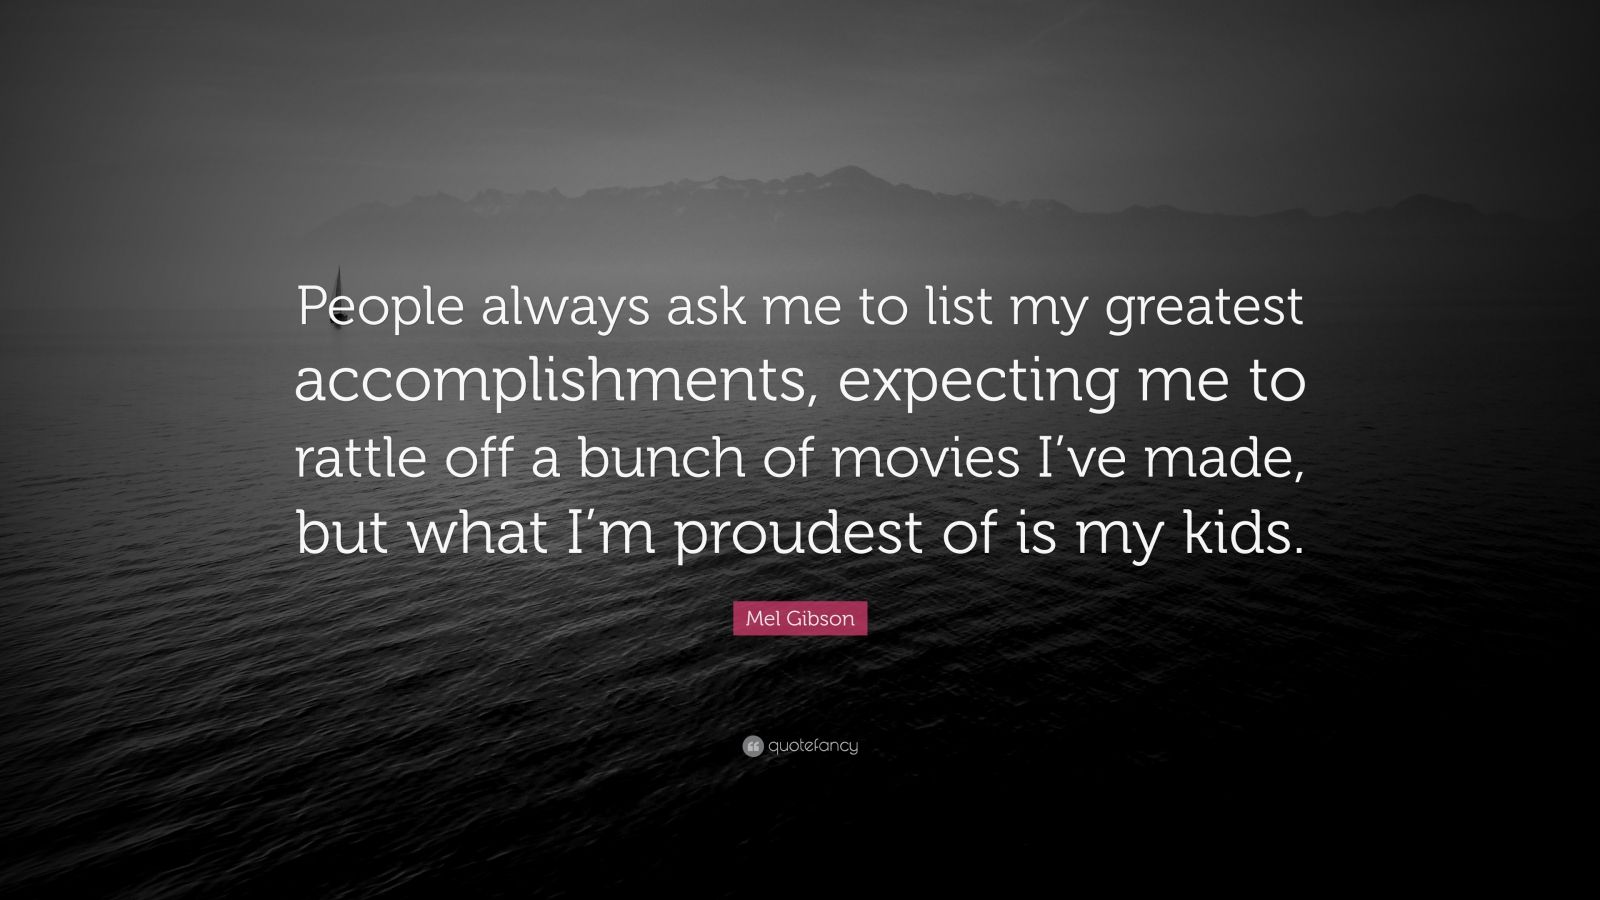 "Mel Gibson Quote: ""People always ask me to list my greatest accomplishments, expecting me to rattle off a bunch of movies I've made, but what I'm proudest of is my kids."""